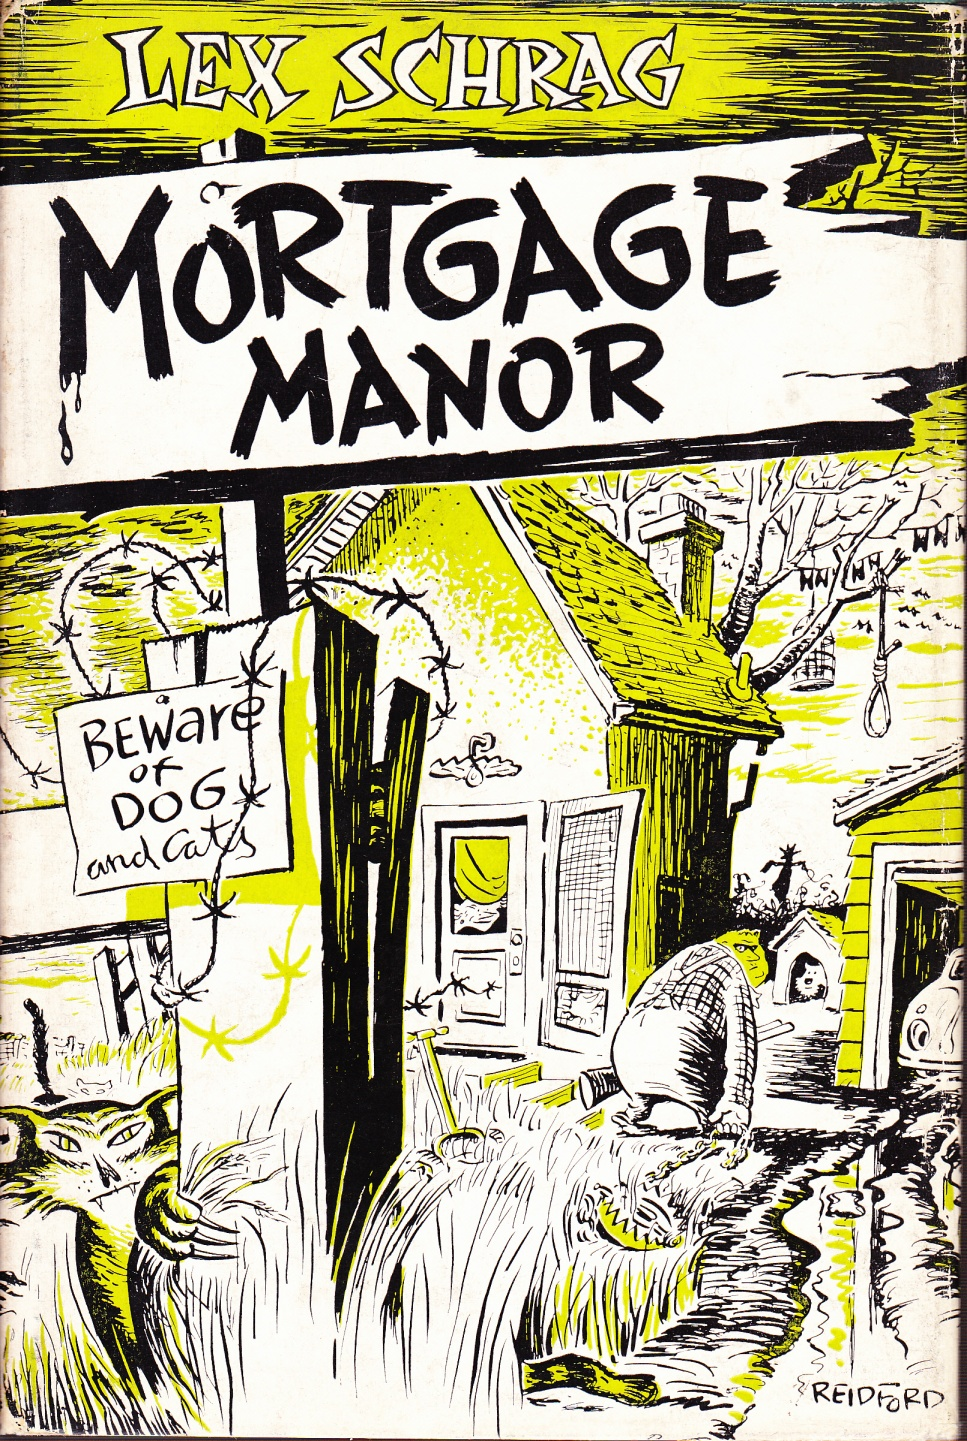 C:\Users\Robert\Documents\CANADIAN CARTOONING ILLUSTRATION and ANIMATION\IMAGE BY CARTOONIST OR ILLUS. R\REIDFORD J. G. Mortgage Manor dust jacket.jpg